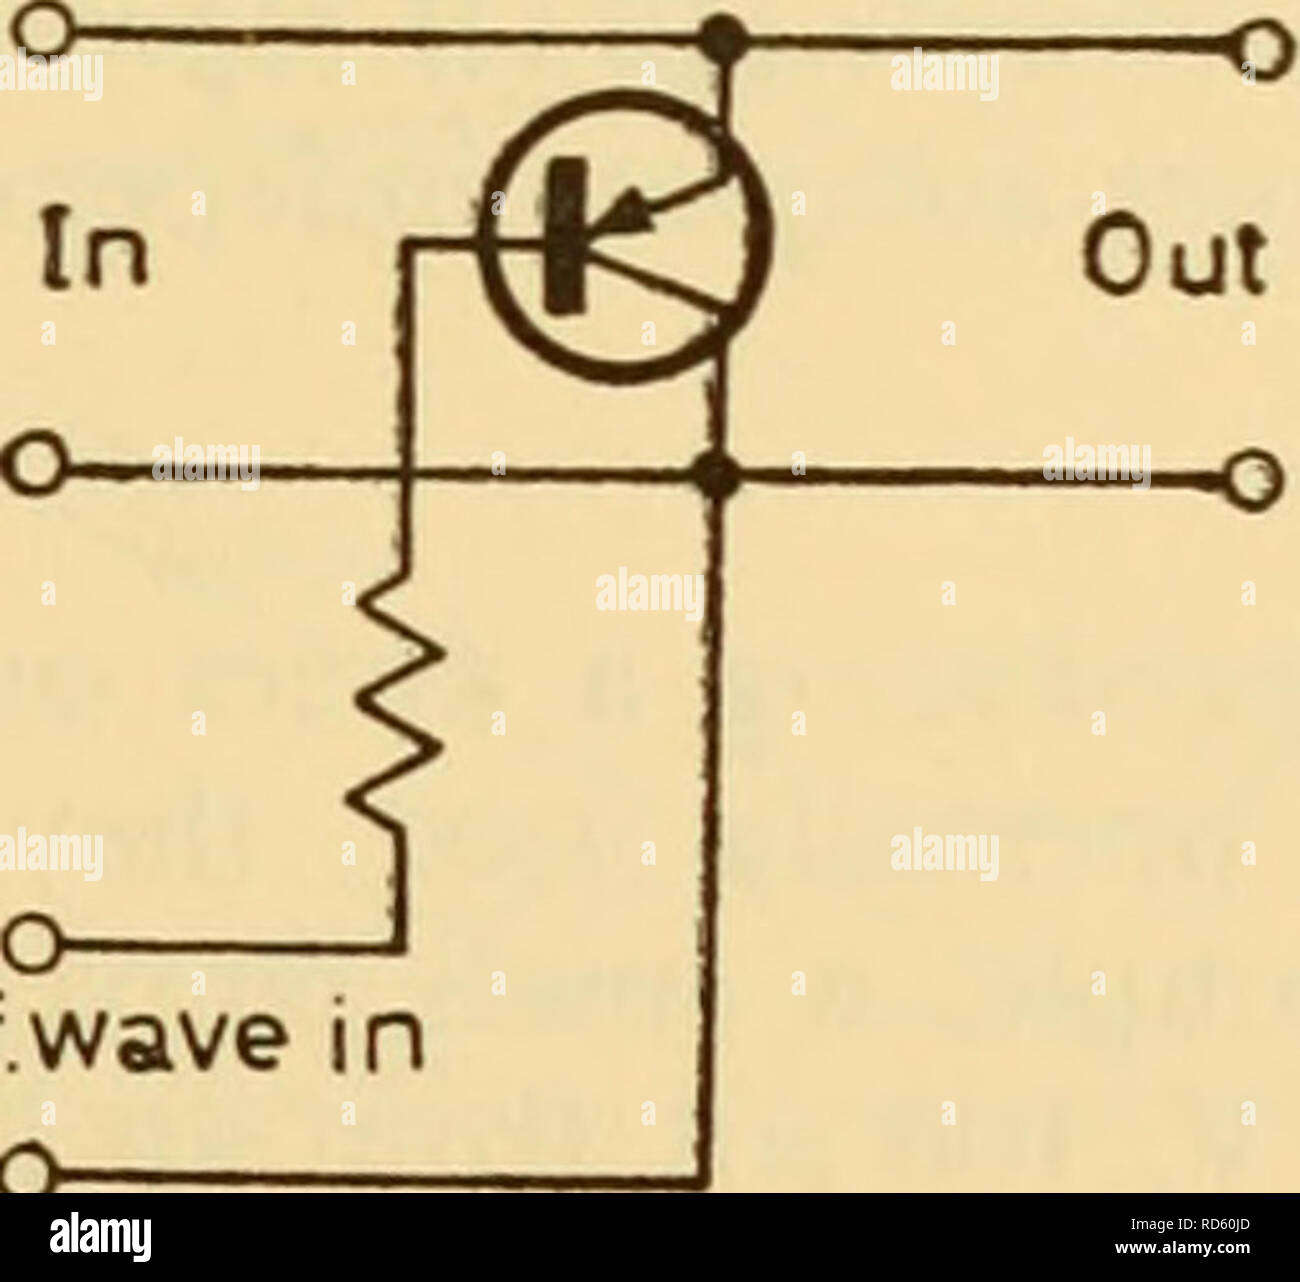 circuit diagram of diode valve wiring diagram all data Diode Broken thermionic diode stock photos \u0026 thermionic diode stock images alamy resistor circuit diagram symbol circuit diagram of diode valve